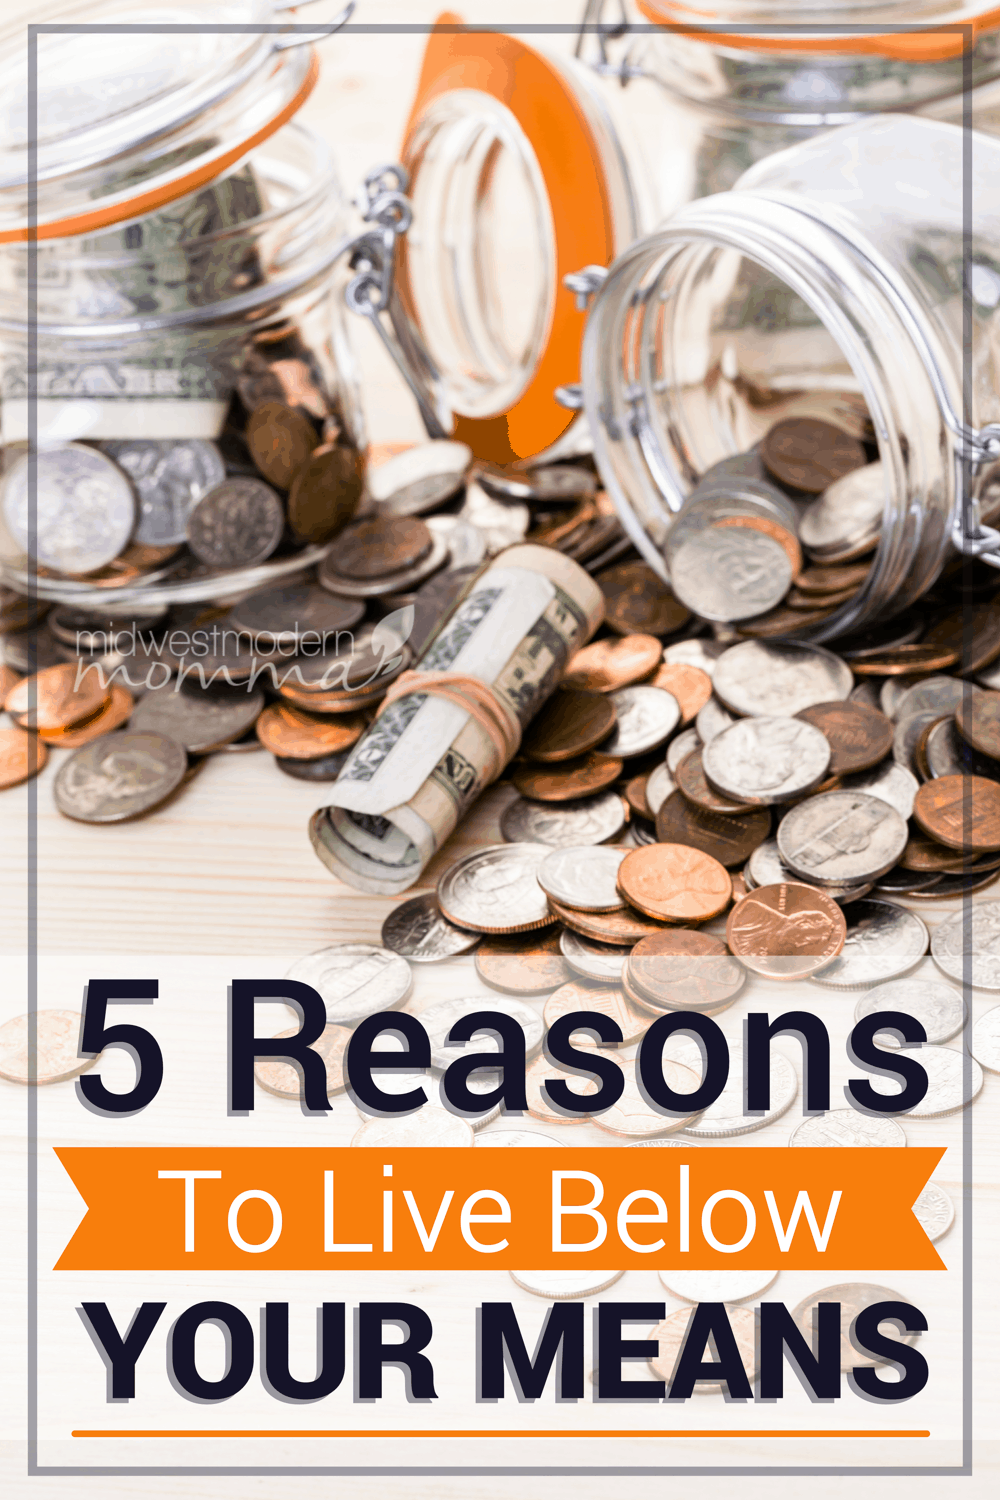 5 Reasons To Live Below Your Means